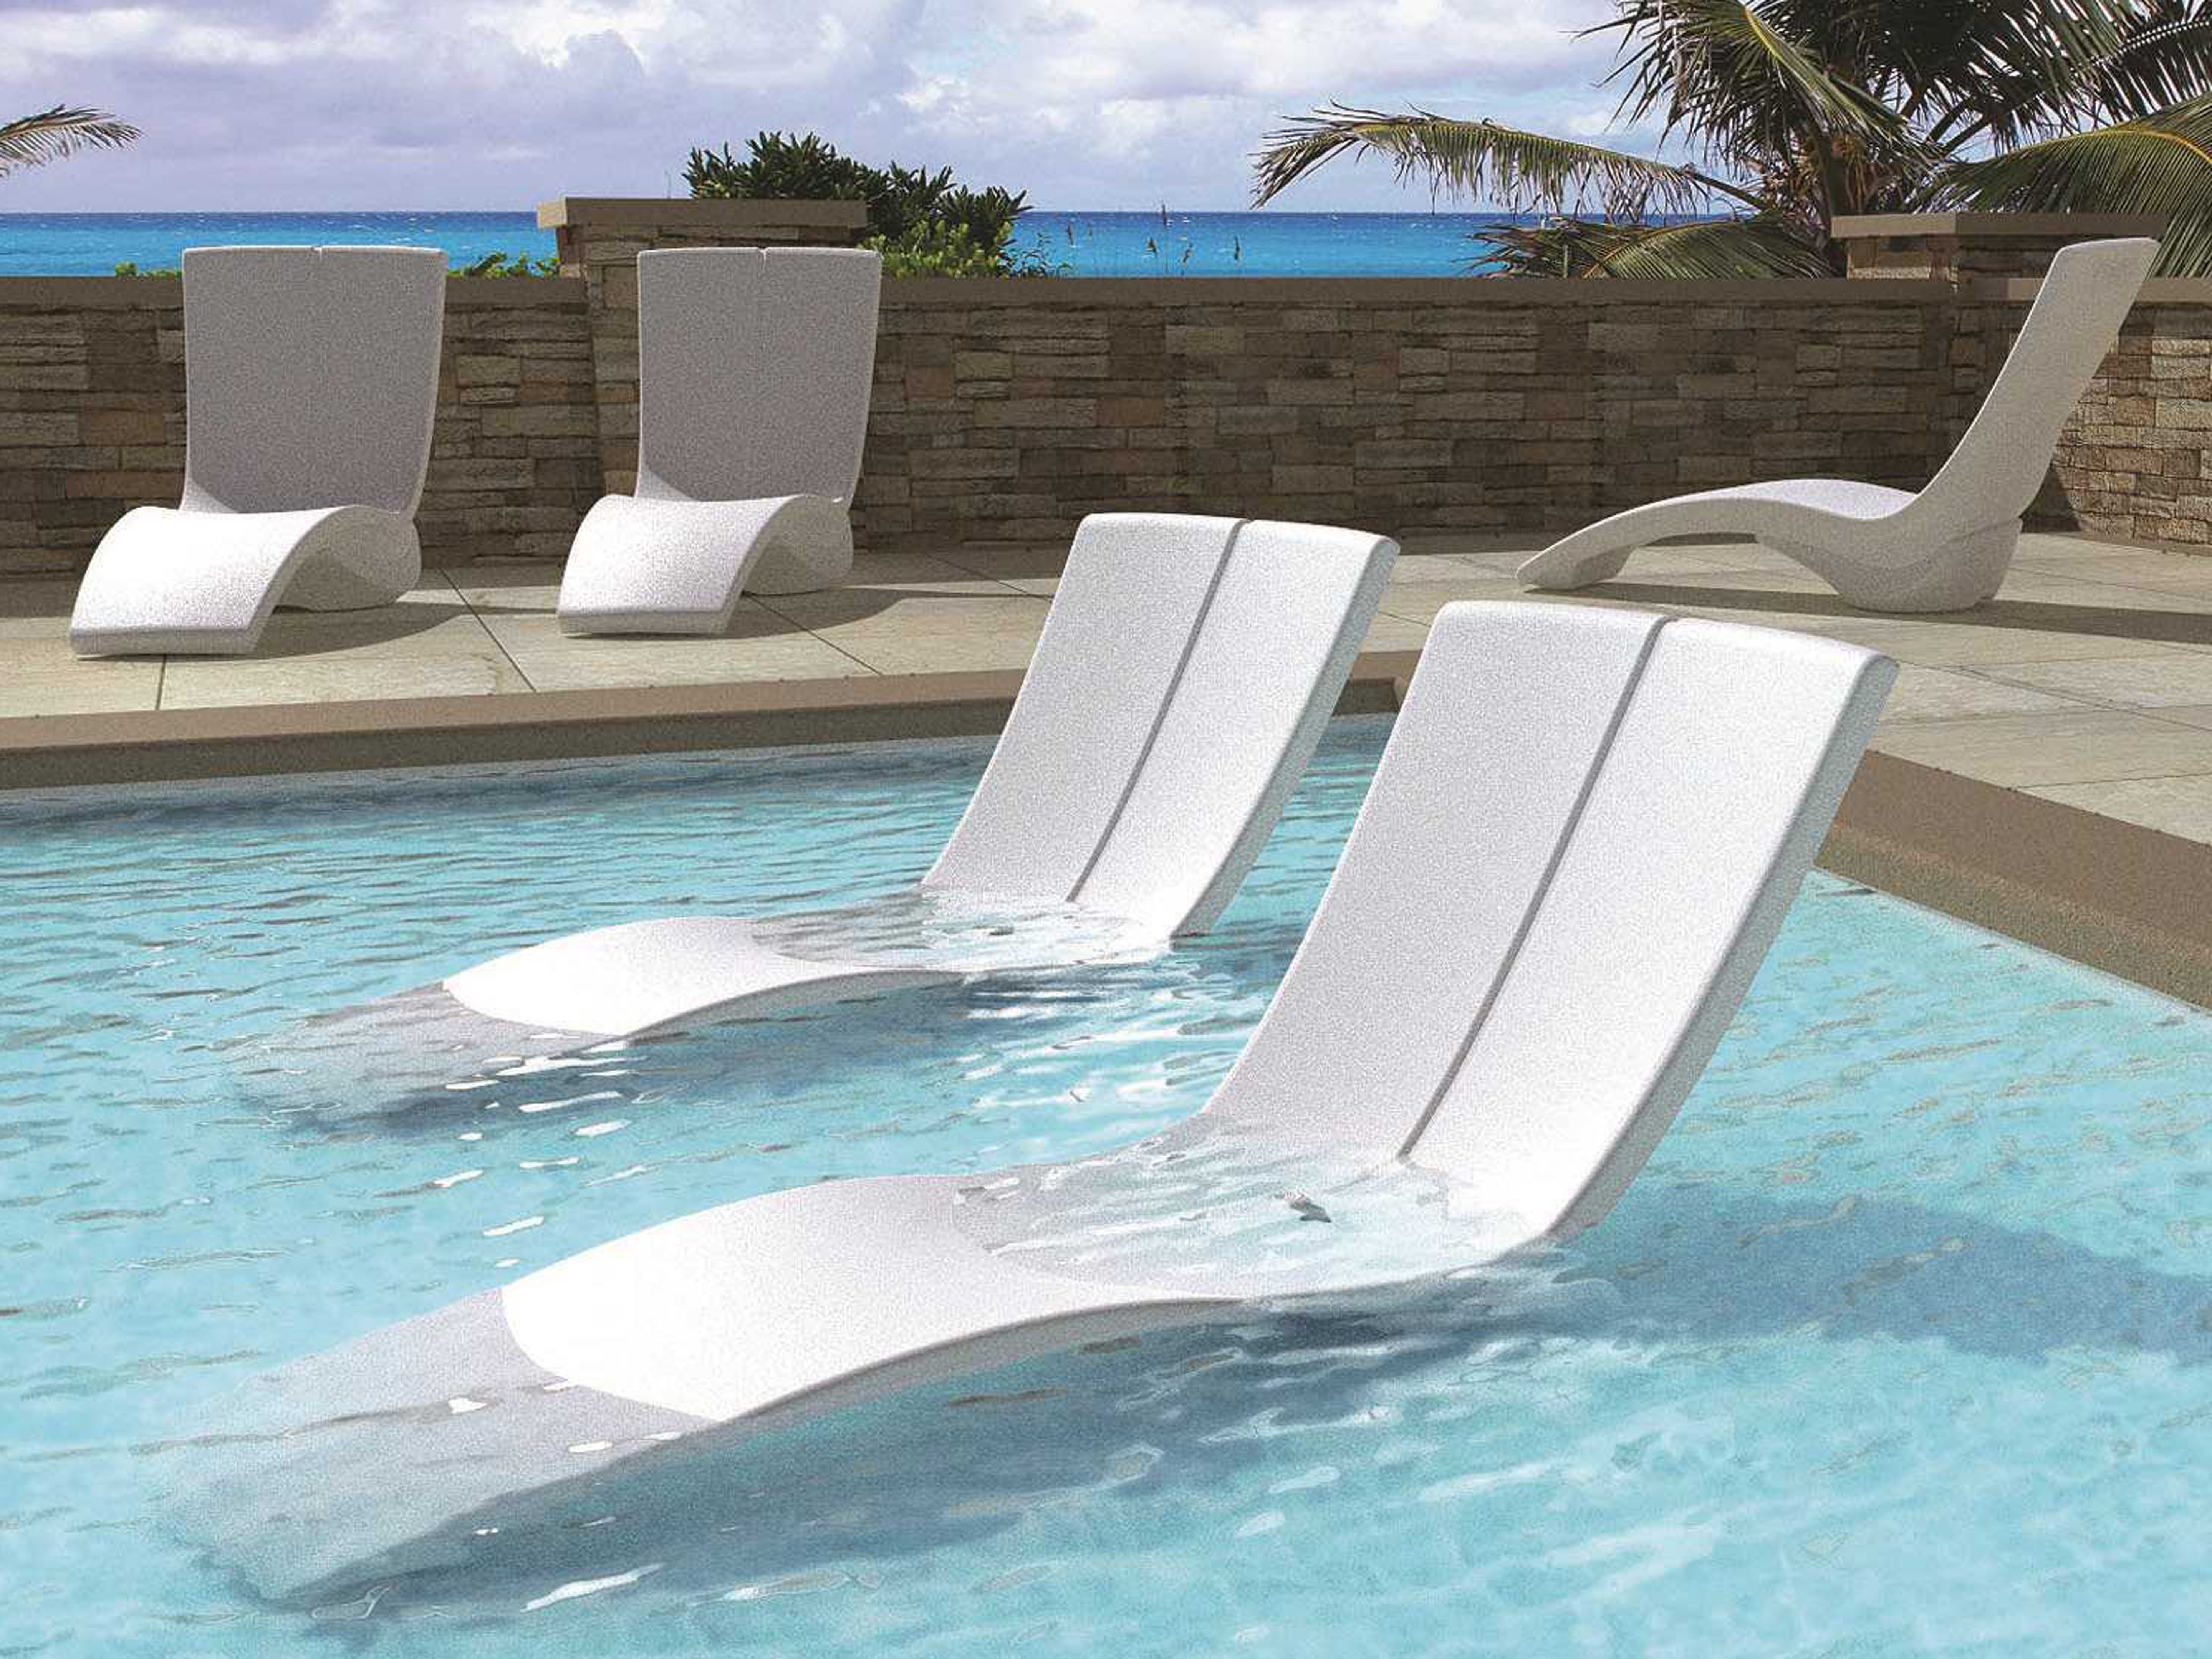 Tropitone Chaise Lounges Within Most Up To Date Tropitone Curve Recycled Plastic Chaise Lounge Set (View 2 of 15)